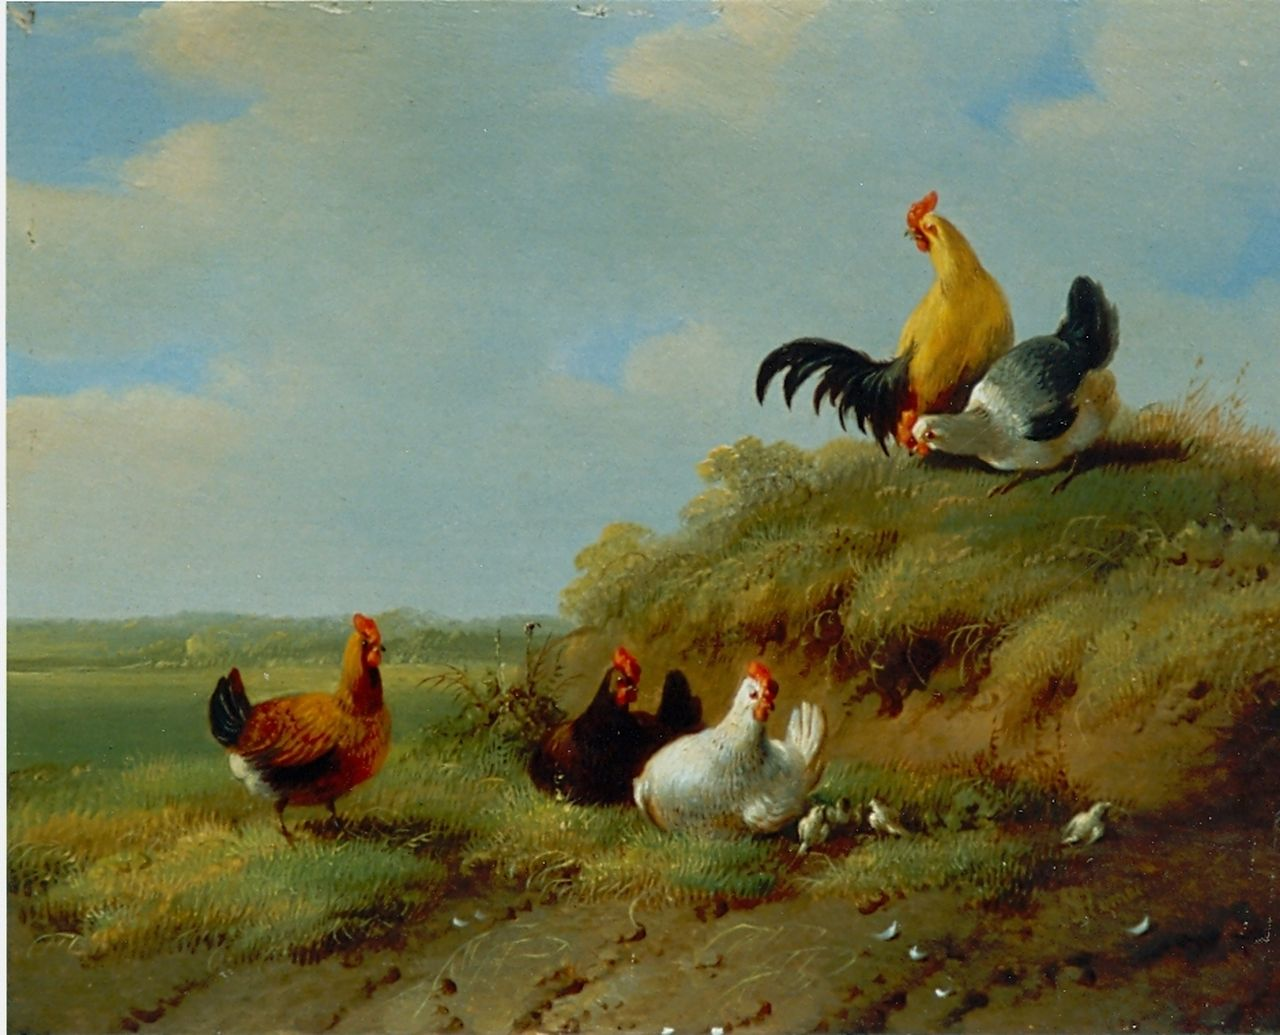 Verhoesen A.  | Albertus Verhoesen, Chickens and rooster, oil on panel 14.0 x 13.6 cm, signed l.r.